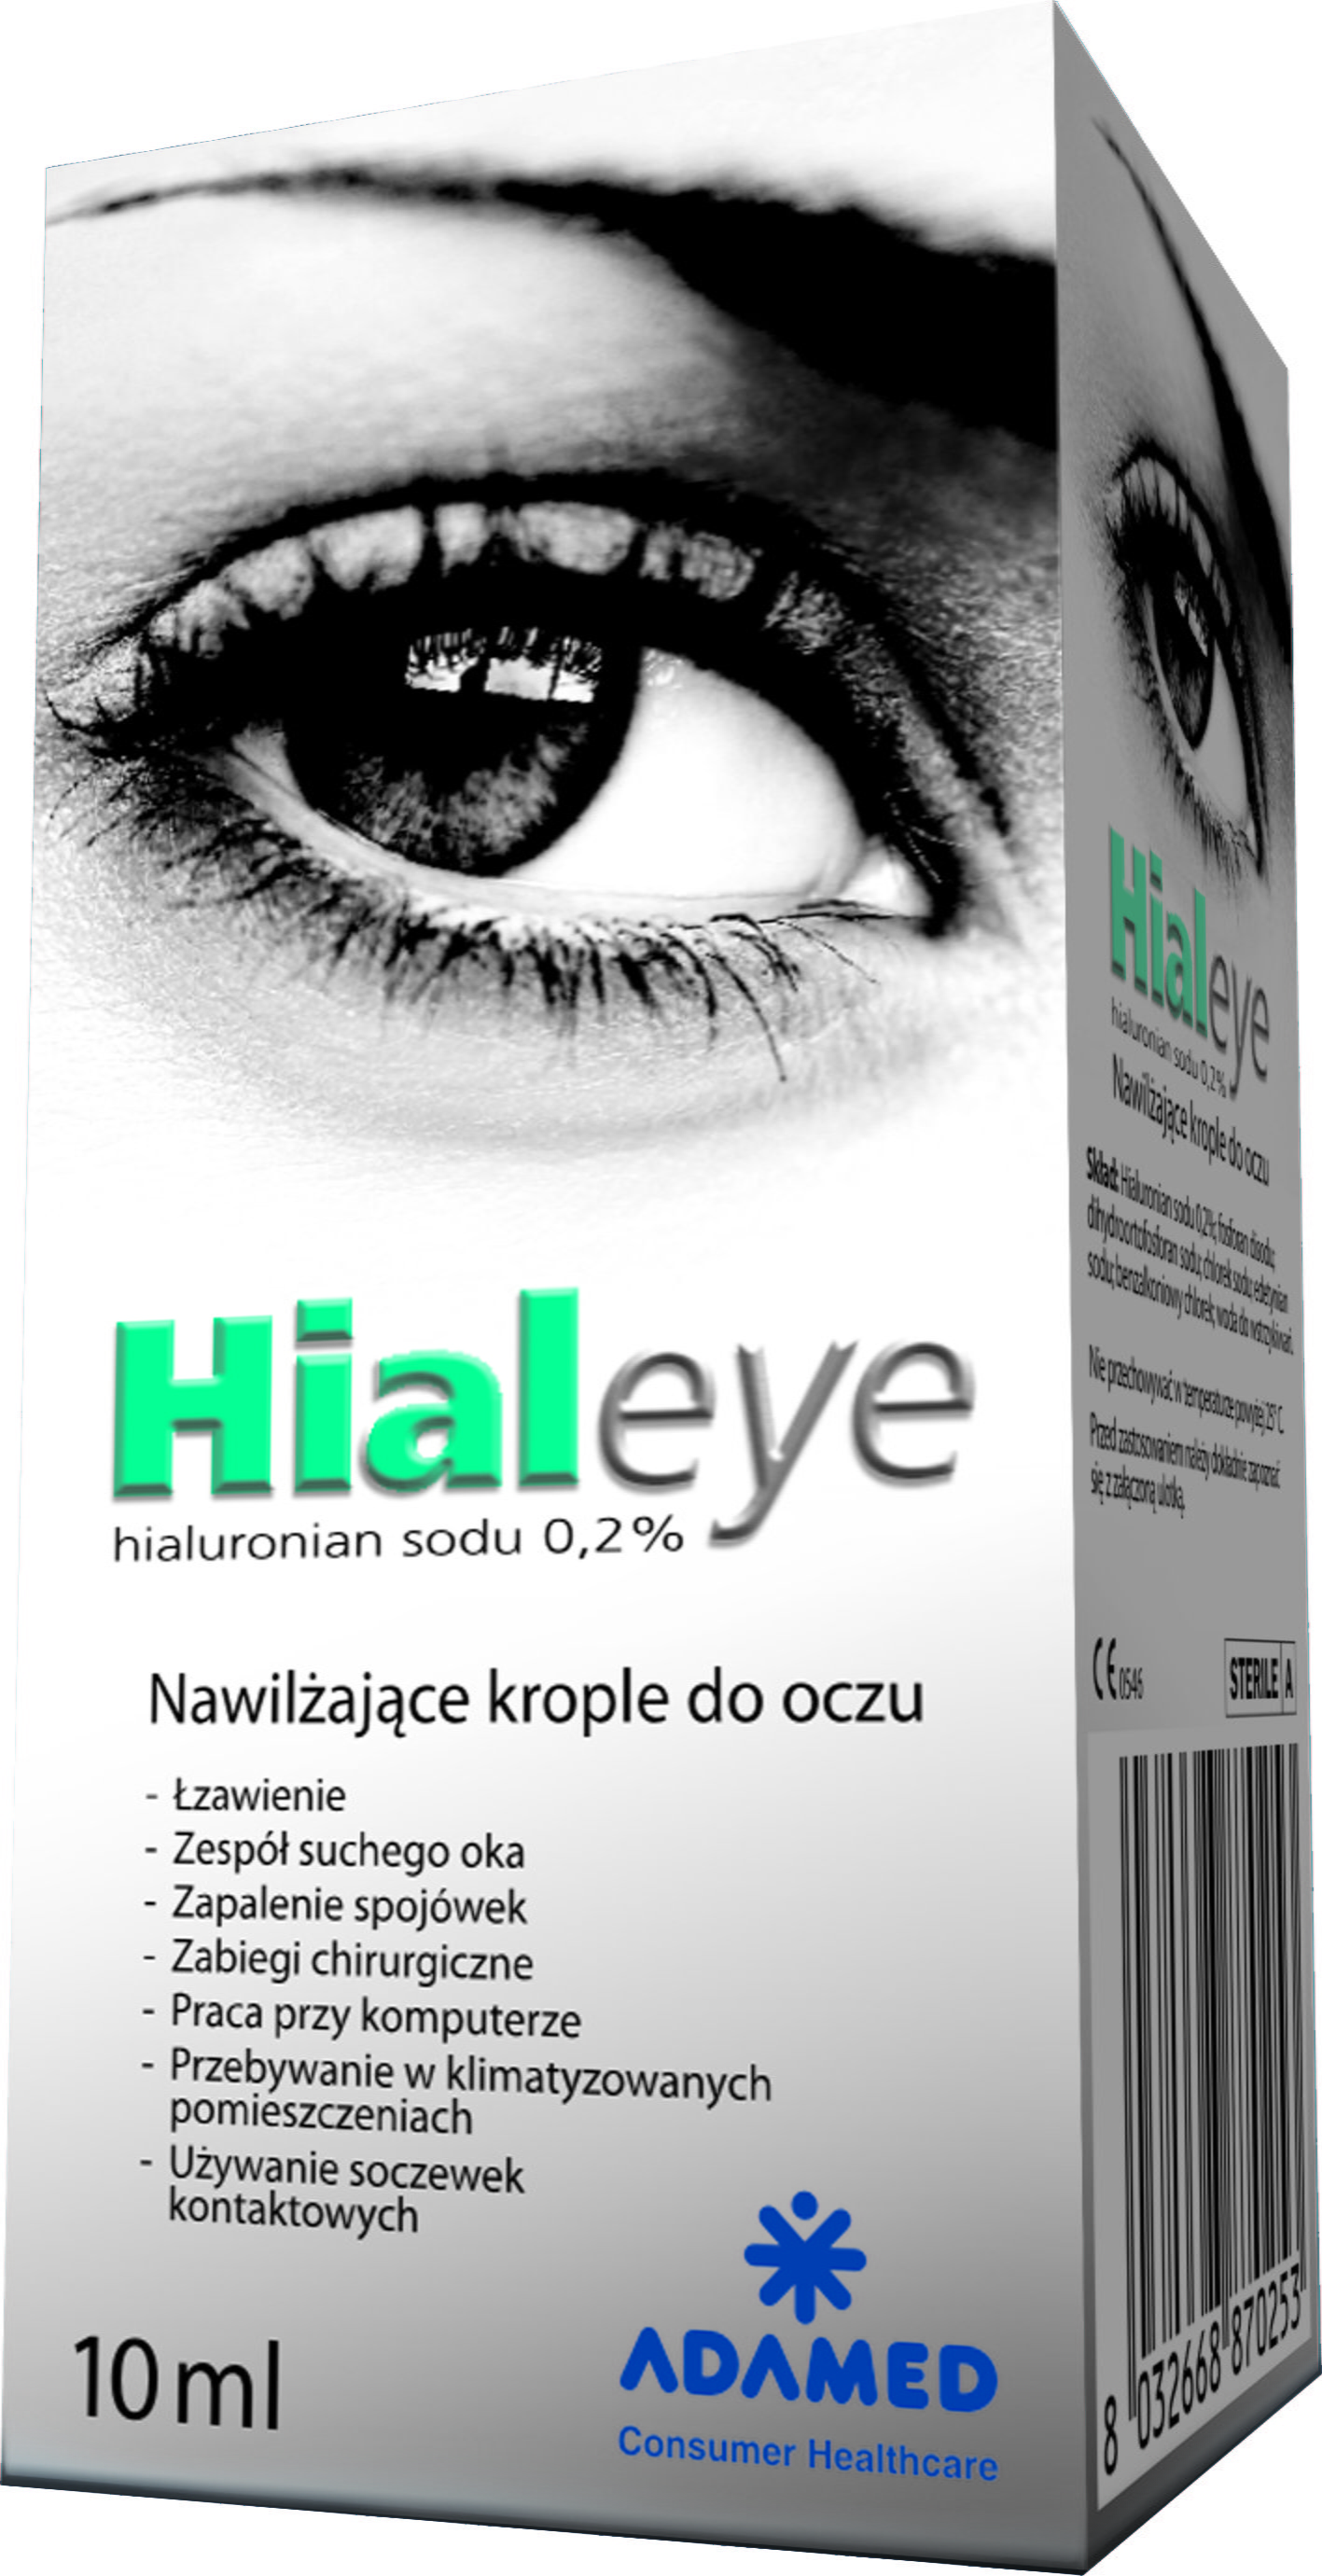 Adamed Hialeye 0,2% 10 ml